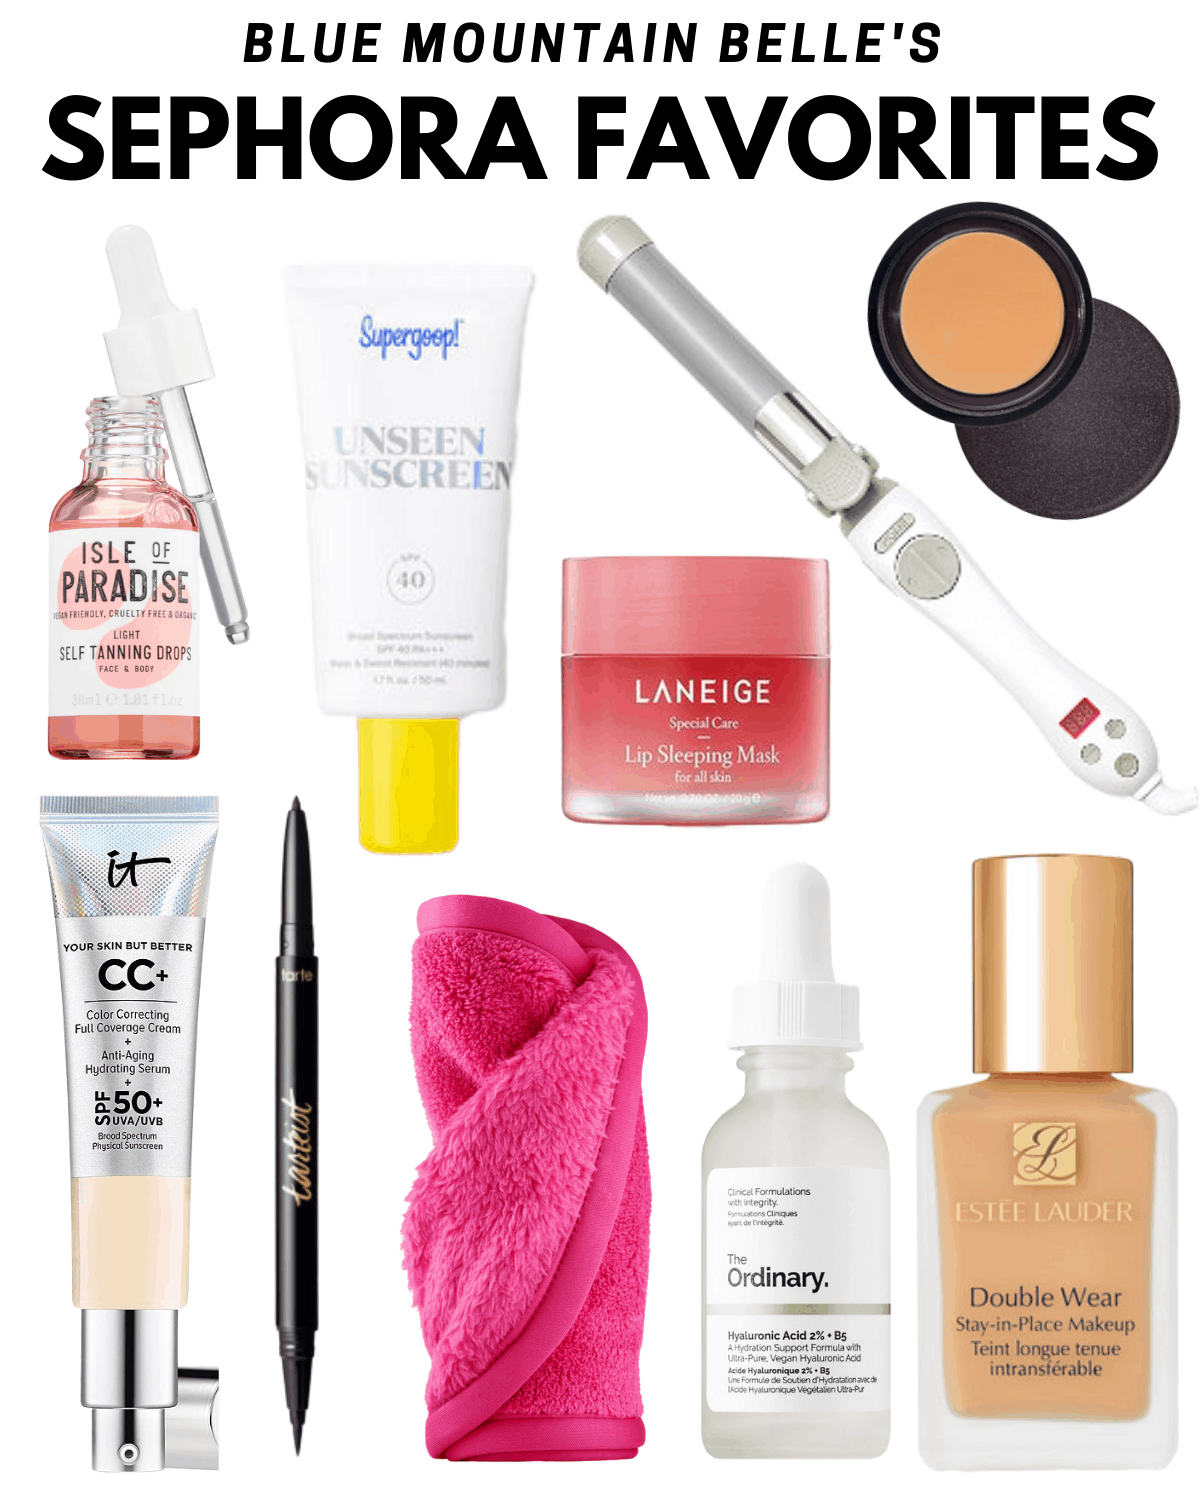 Sephora Favorites on sale now